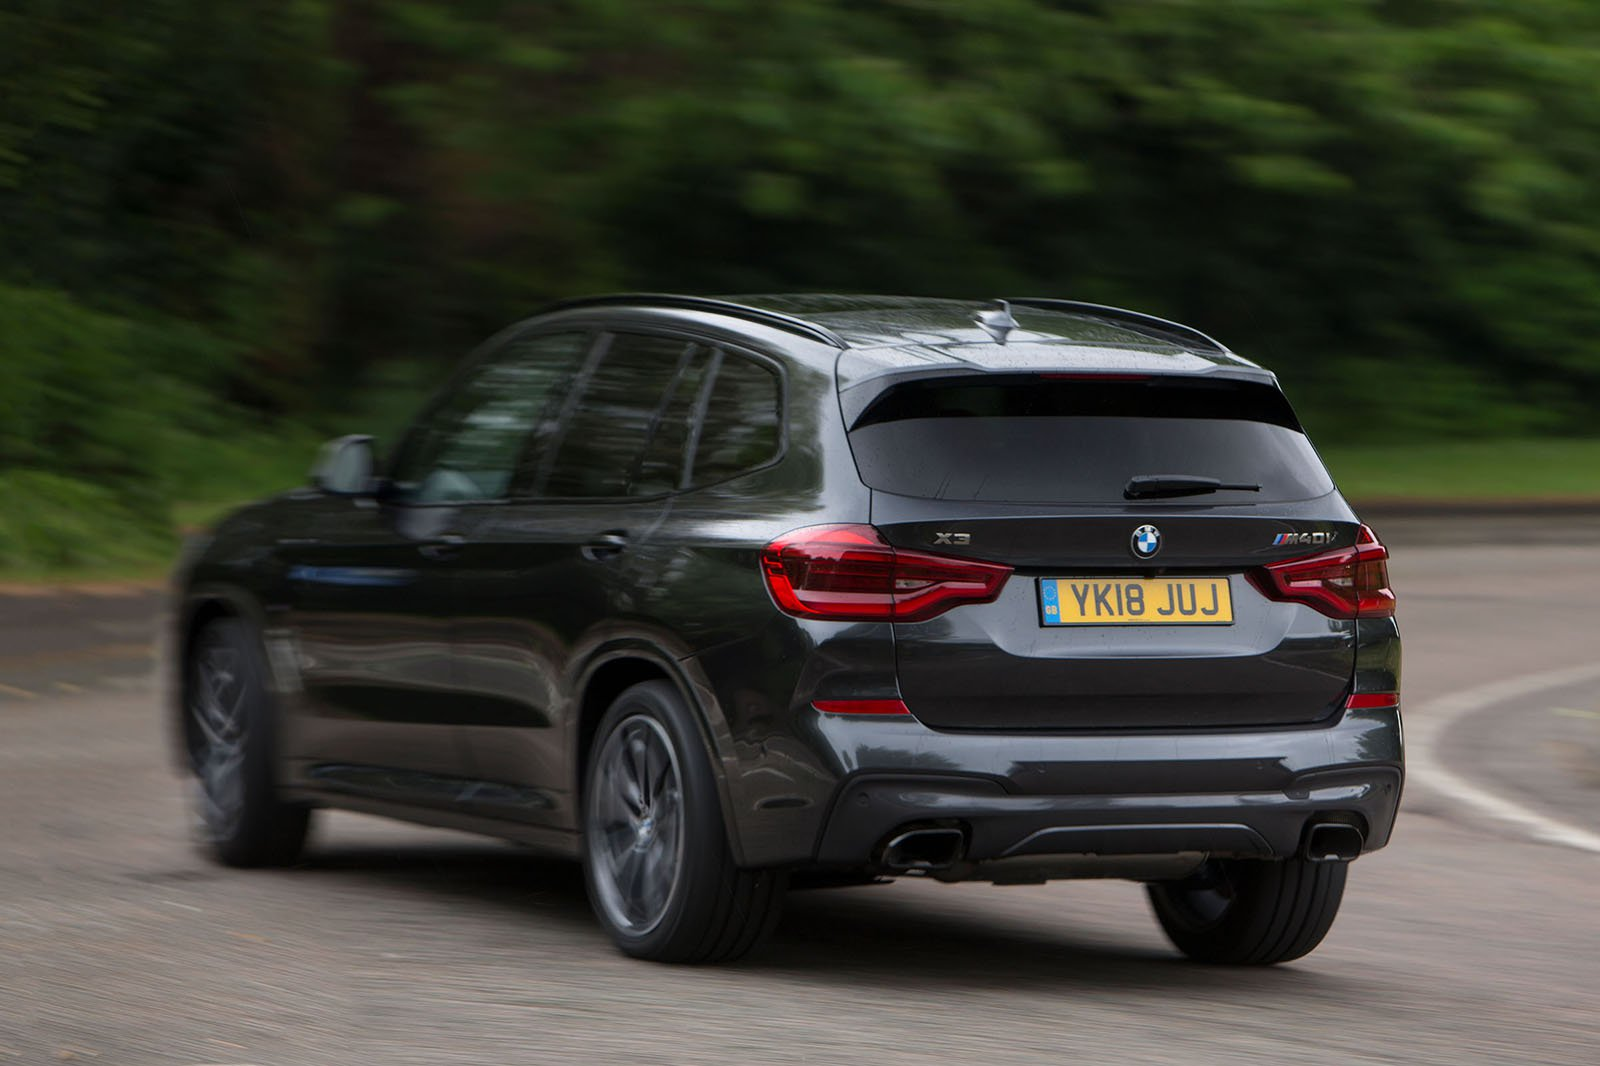 BMW X3 Performance, Engine, Ride, Handling | What Car?